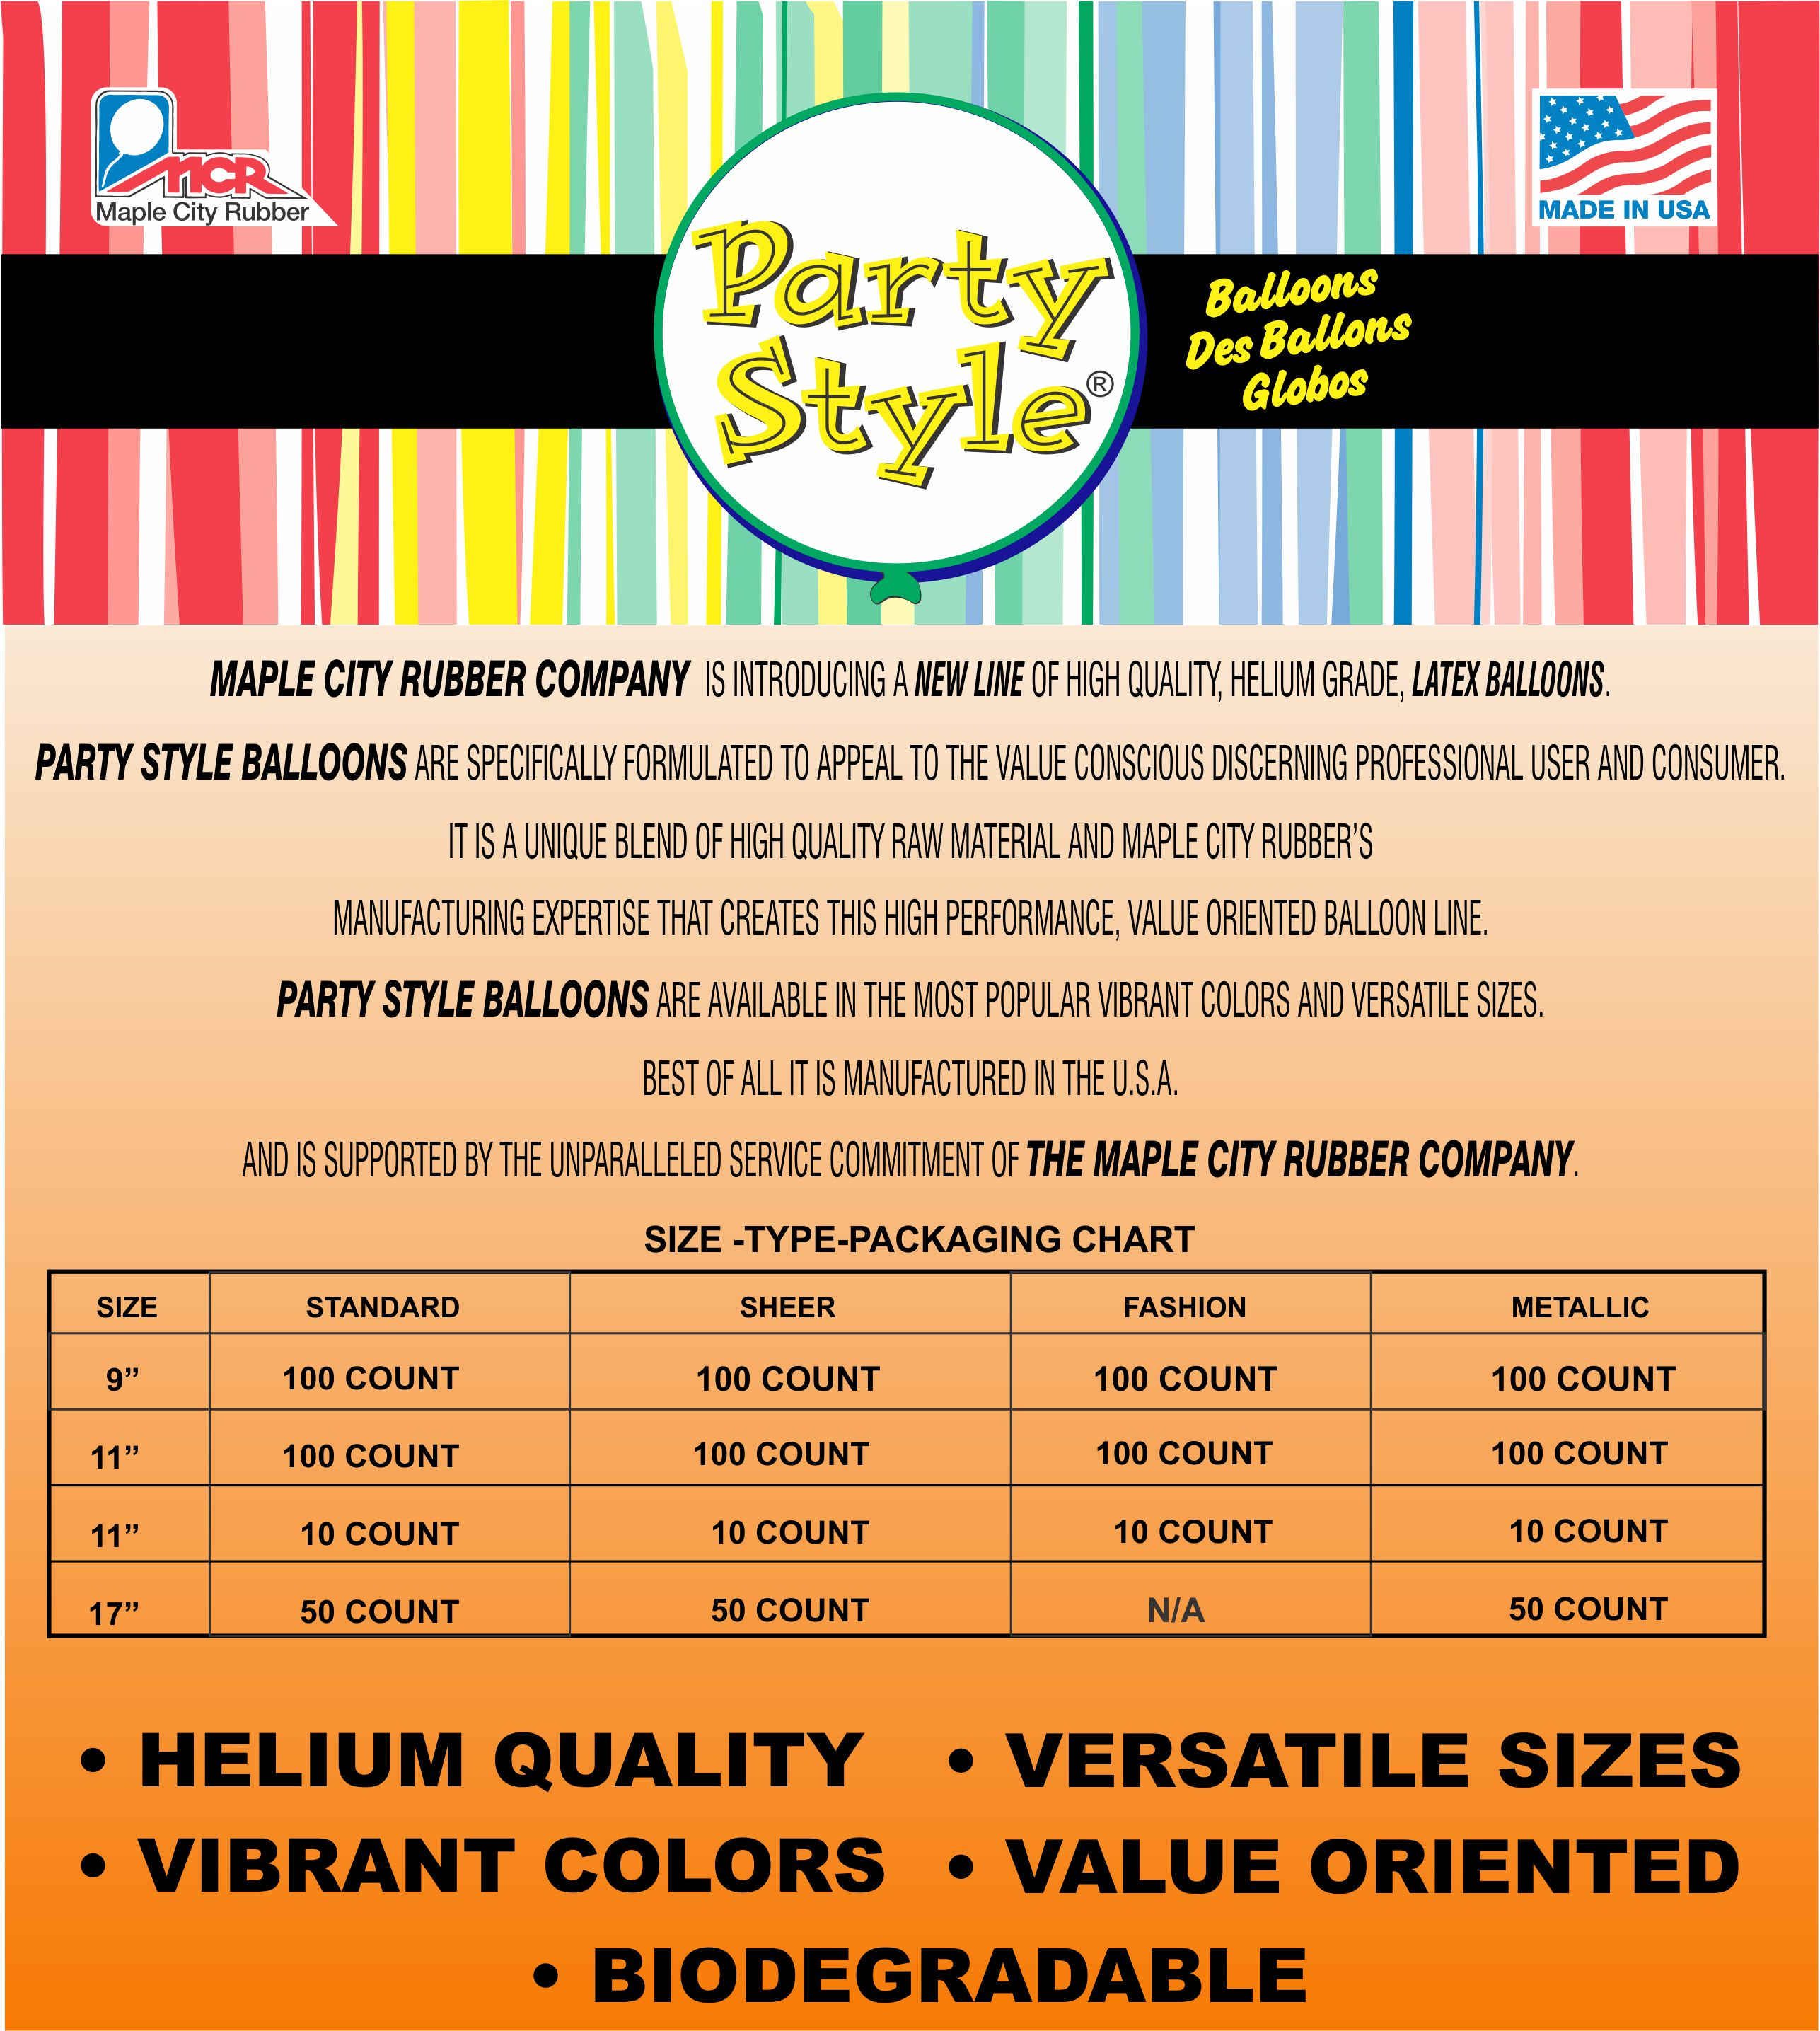 2018 PARTY STYLE Balloons page FINAL no footer